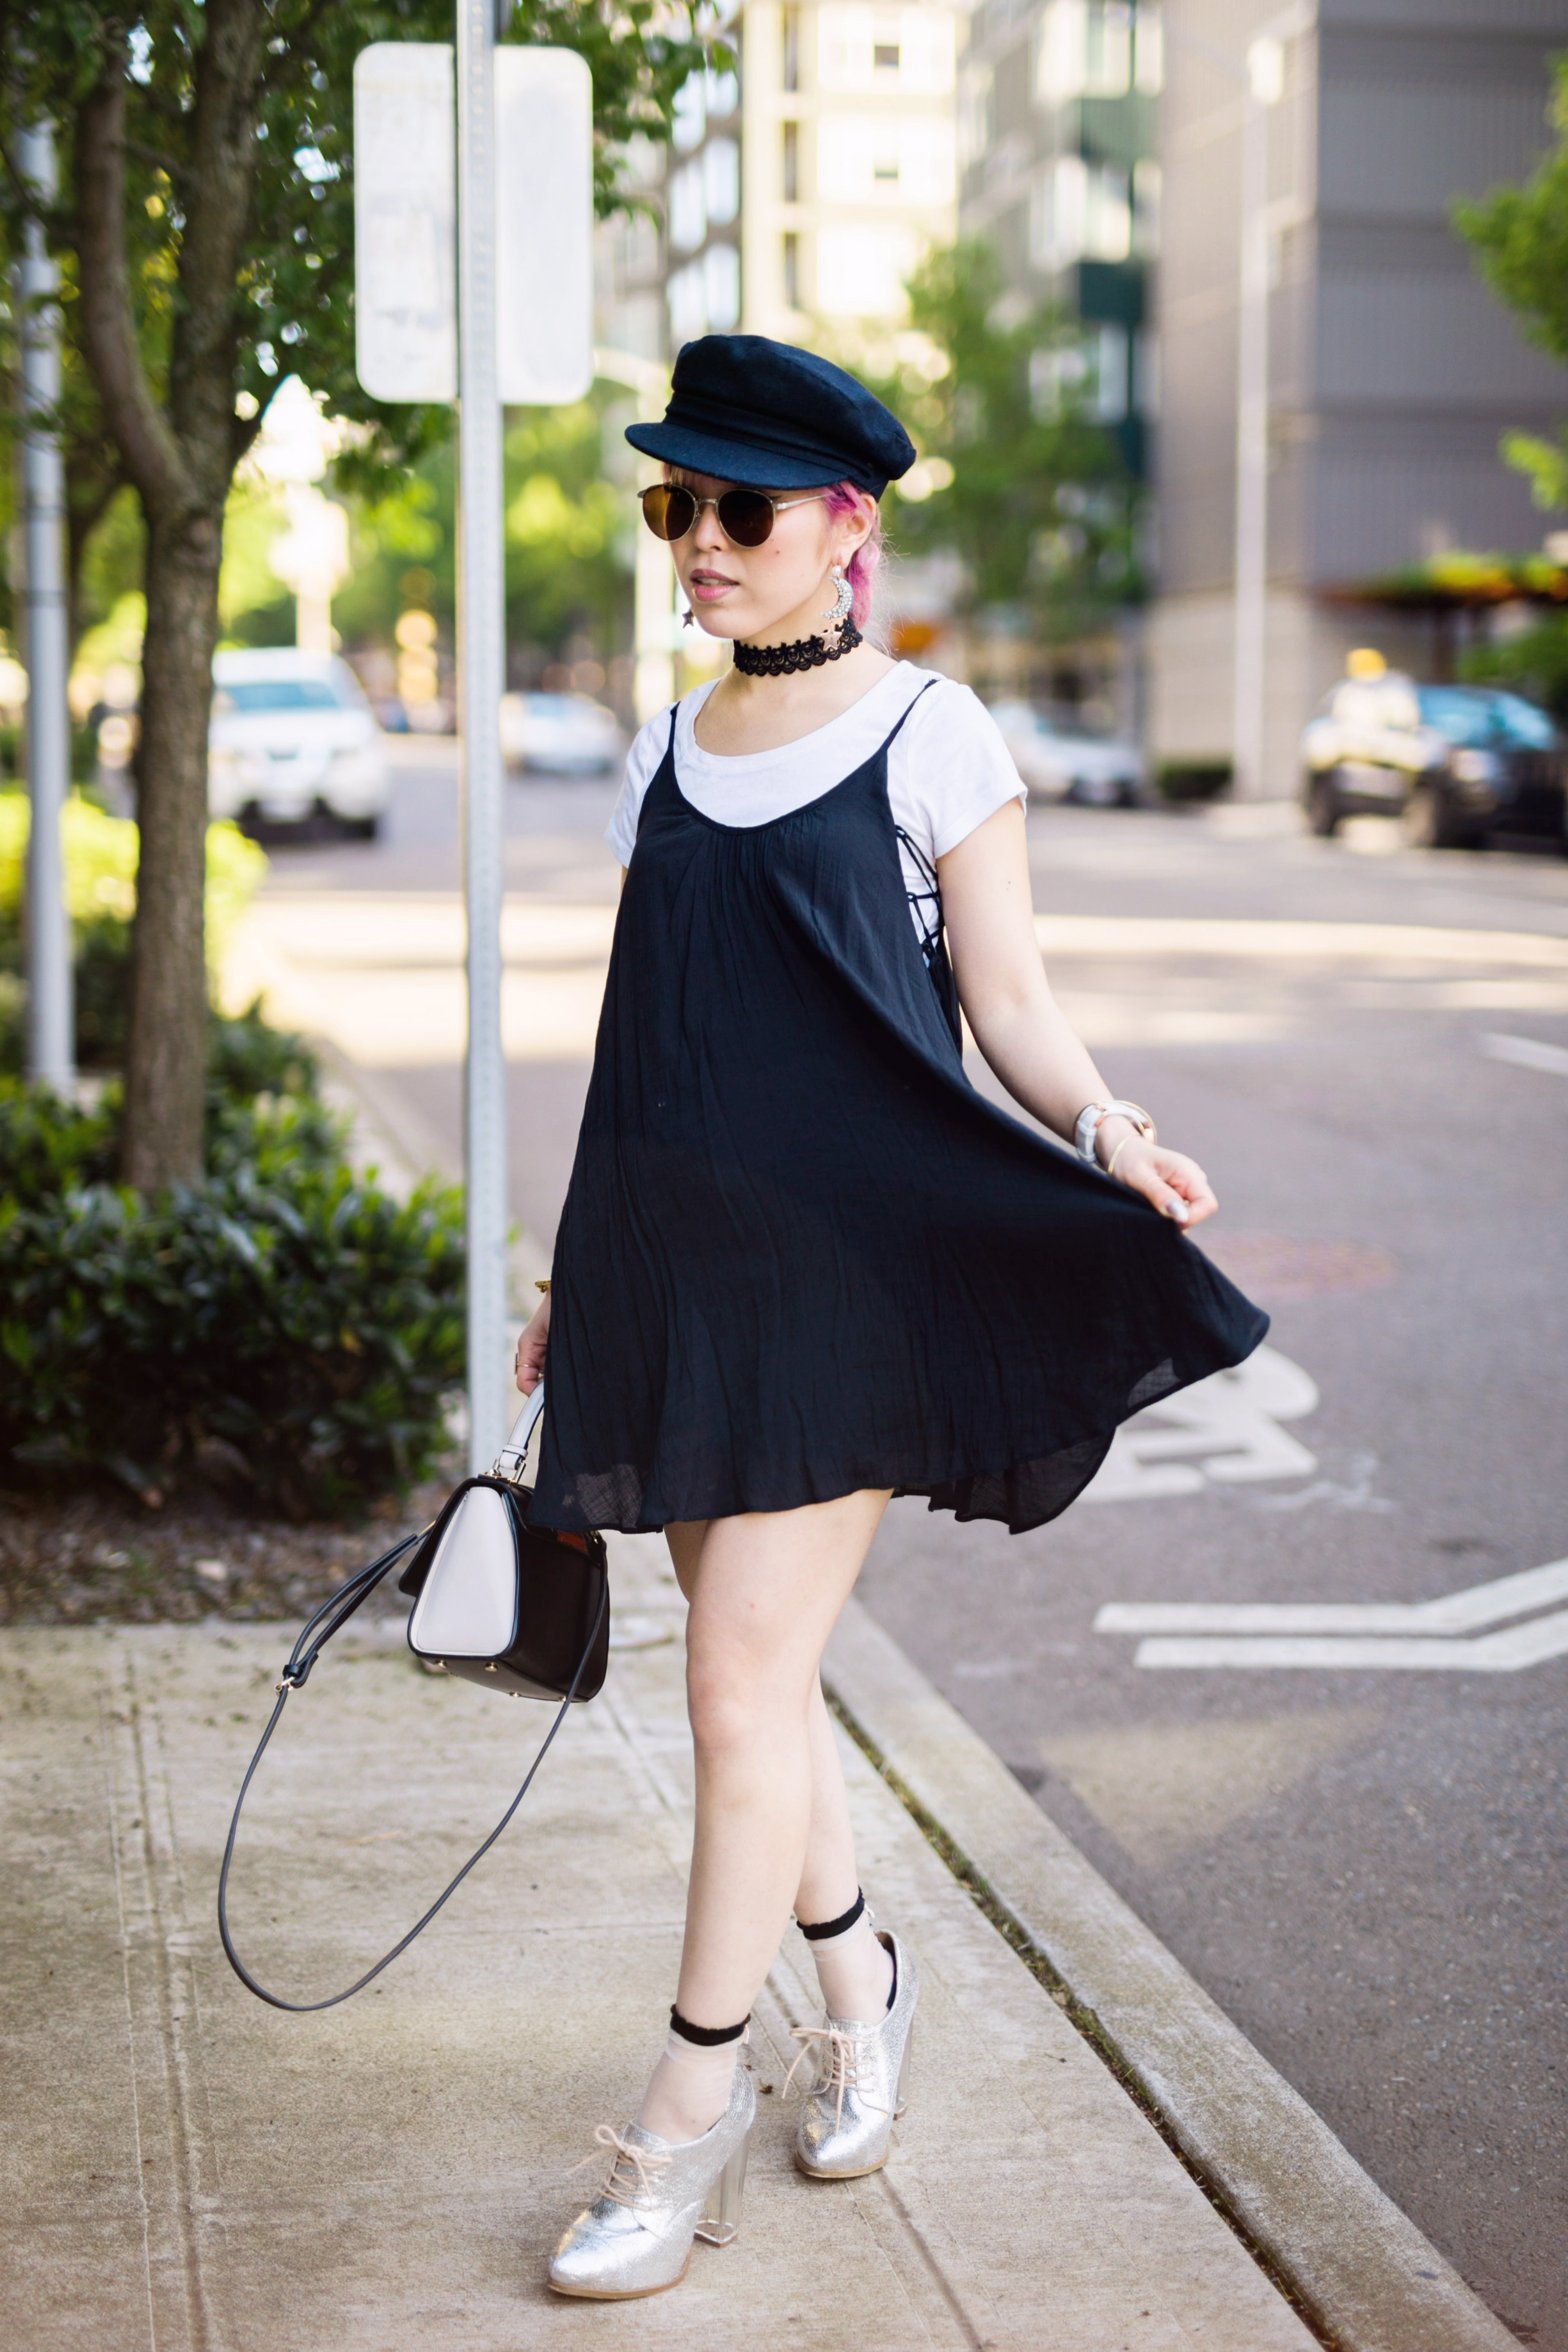 Aritzia News Boy Cap_Polette Retro Round Sunglasses_Mango Moon Star Earrings_Shopdixi Lace Choker_Forever 21 White Tee_Urban Outfitters Little Black Dress_Zara Bag_Sheer ankle Socks_ASOS Glitter Block heels Shoes_Aikas Love Closet_Seattle Fashion Blogger_Japanese_Pink hair 18